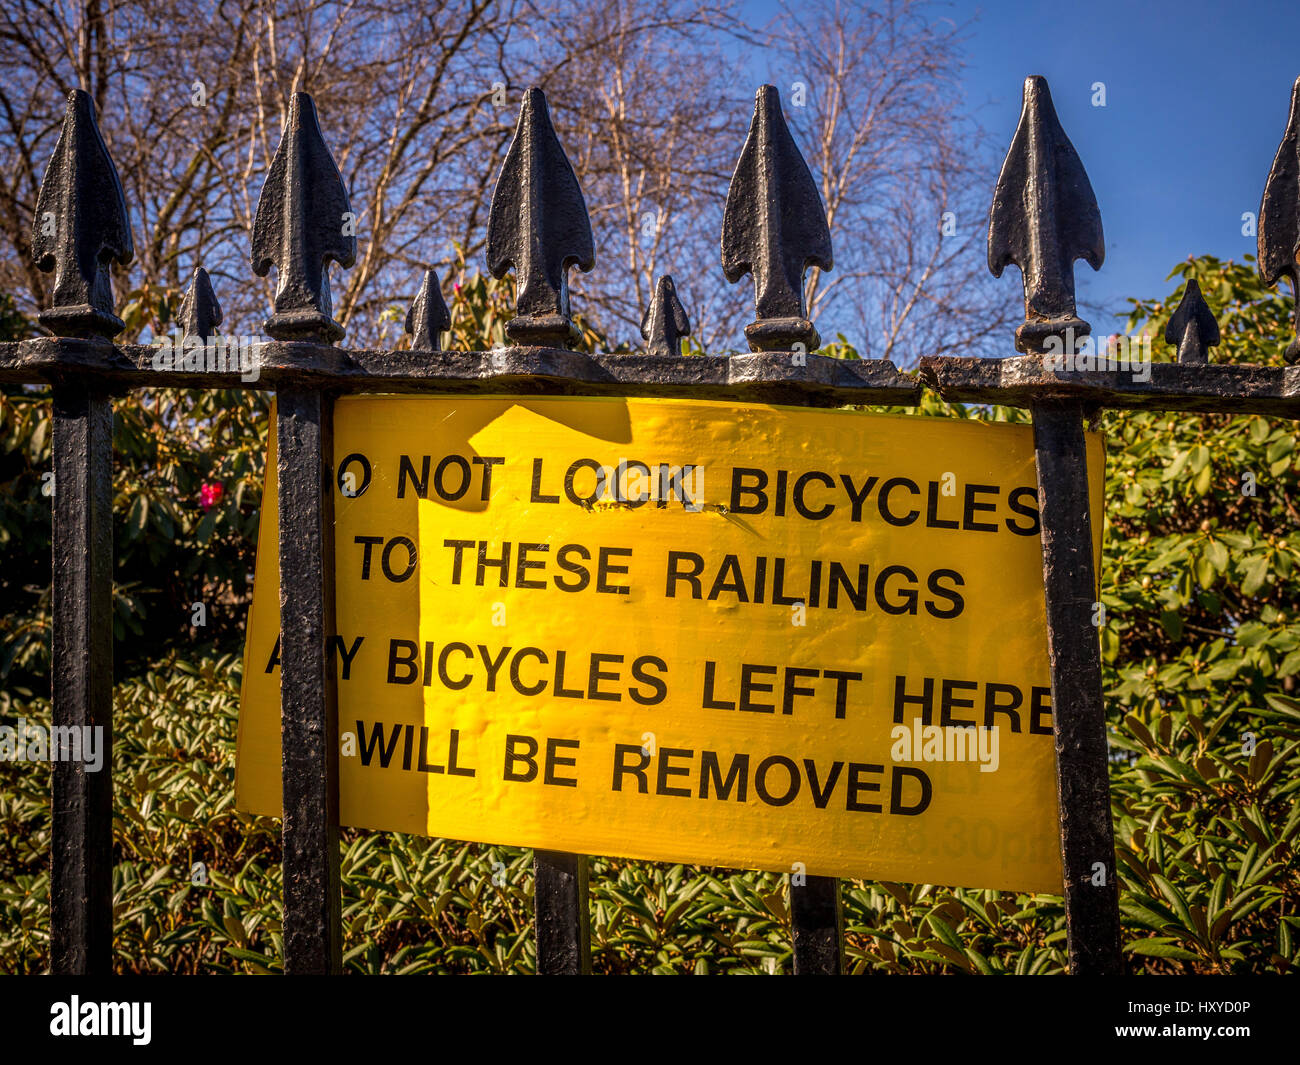 Sign: Do not lock bicycles to these railings. Any bicycles left here will be removed - Stock Image